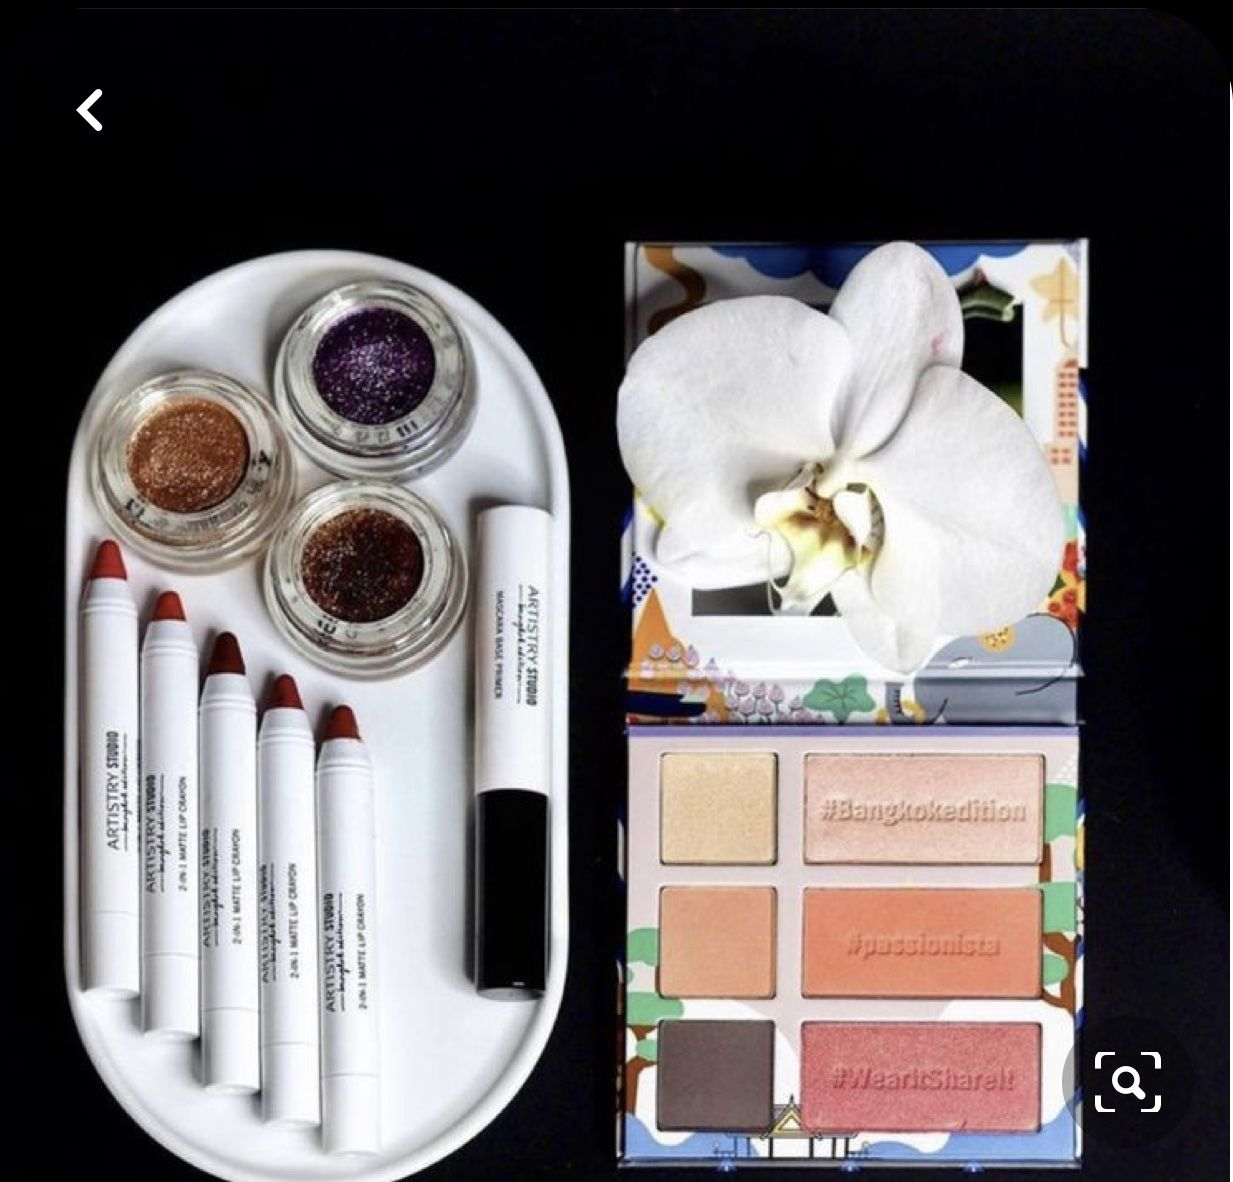 Pin By Maria On Amway Products Artistry Amway Makeup Items